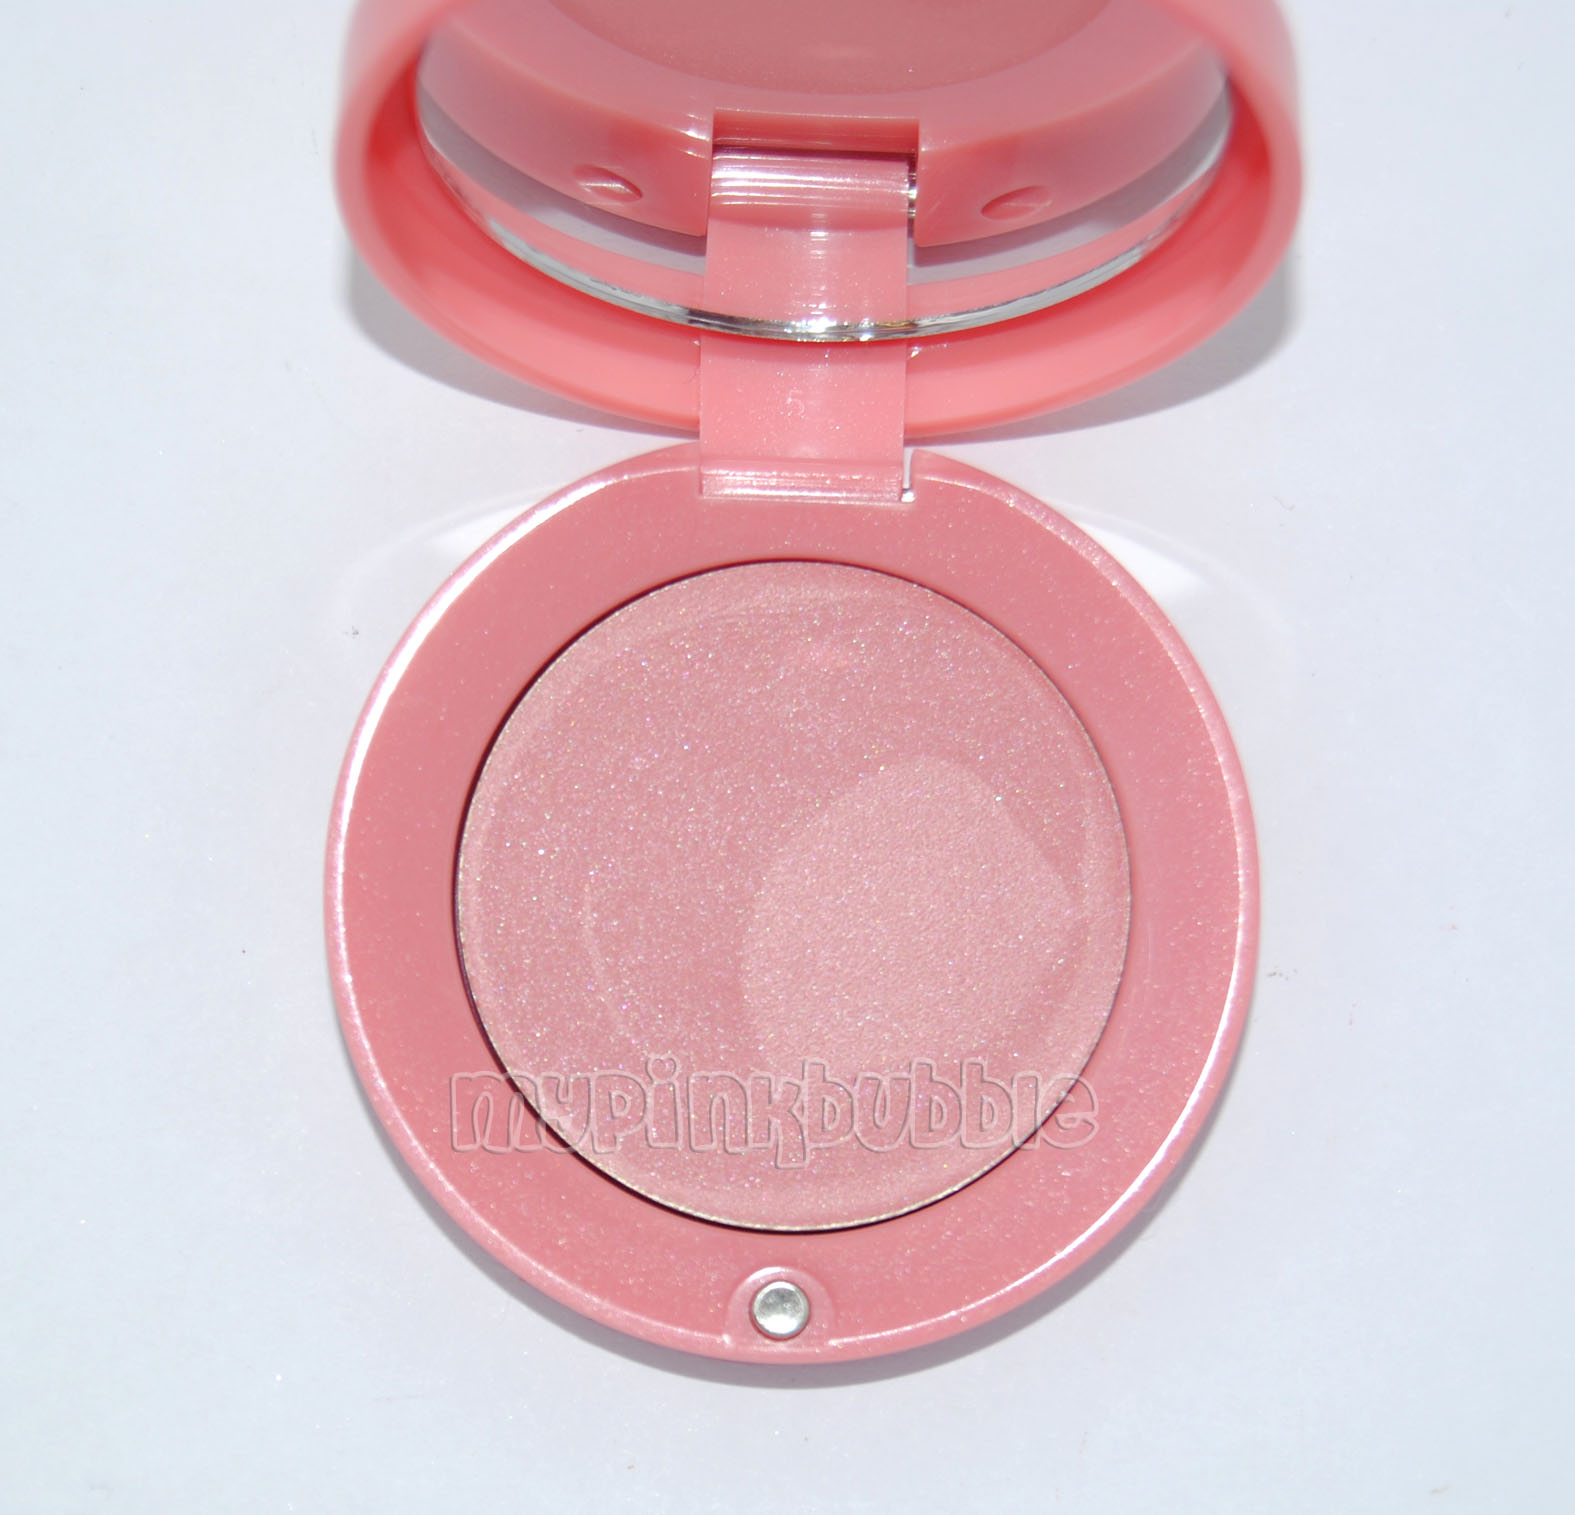 Cream blush bourjois 03 rose tender